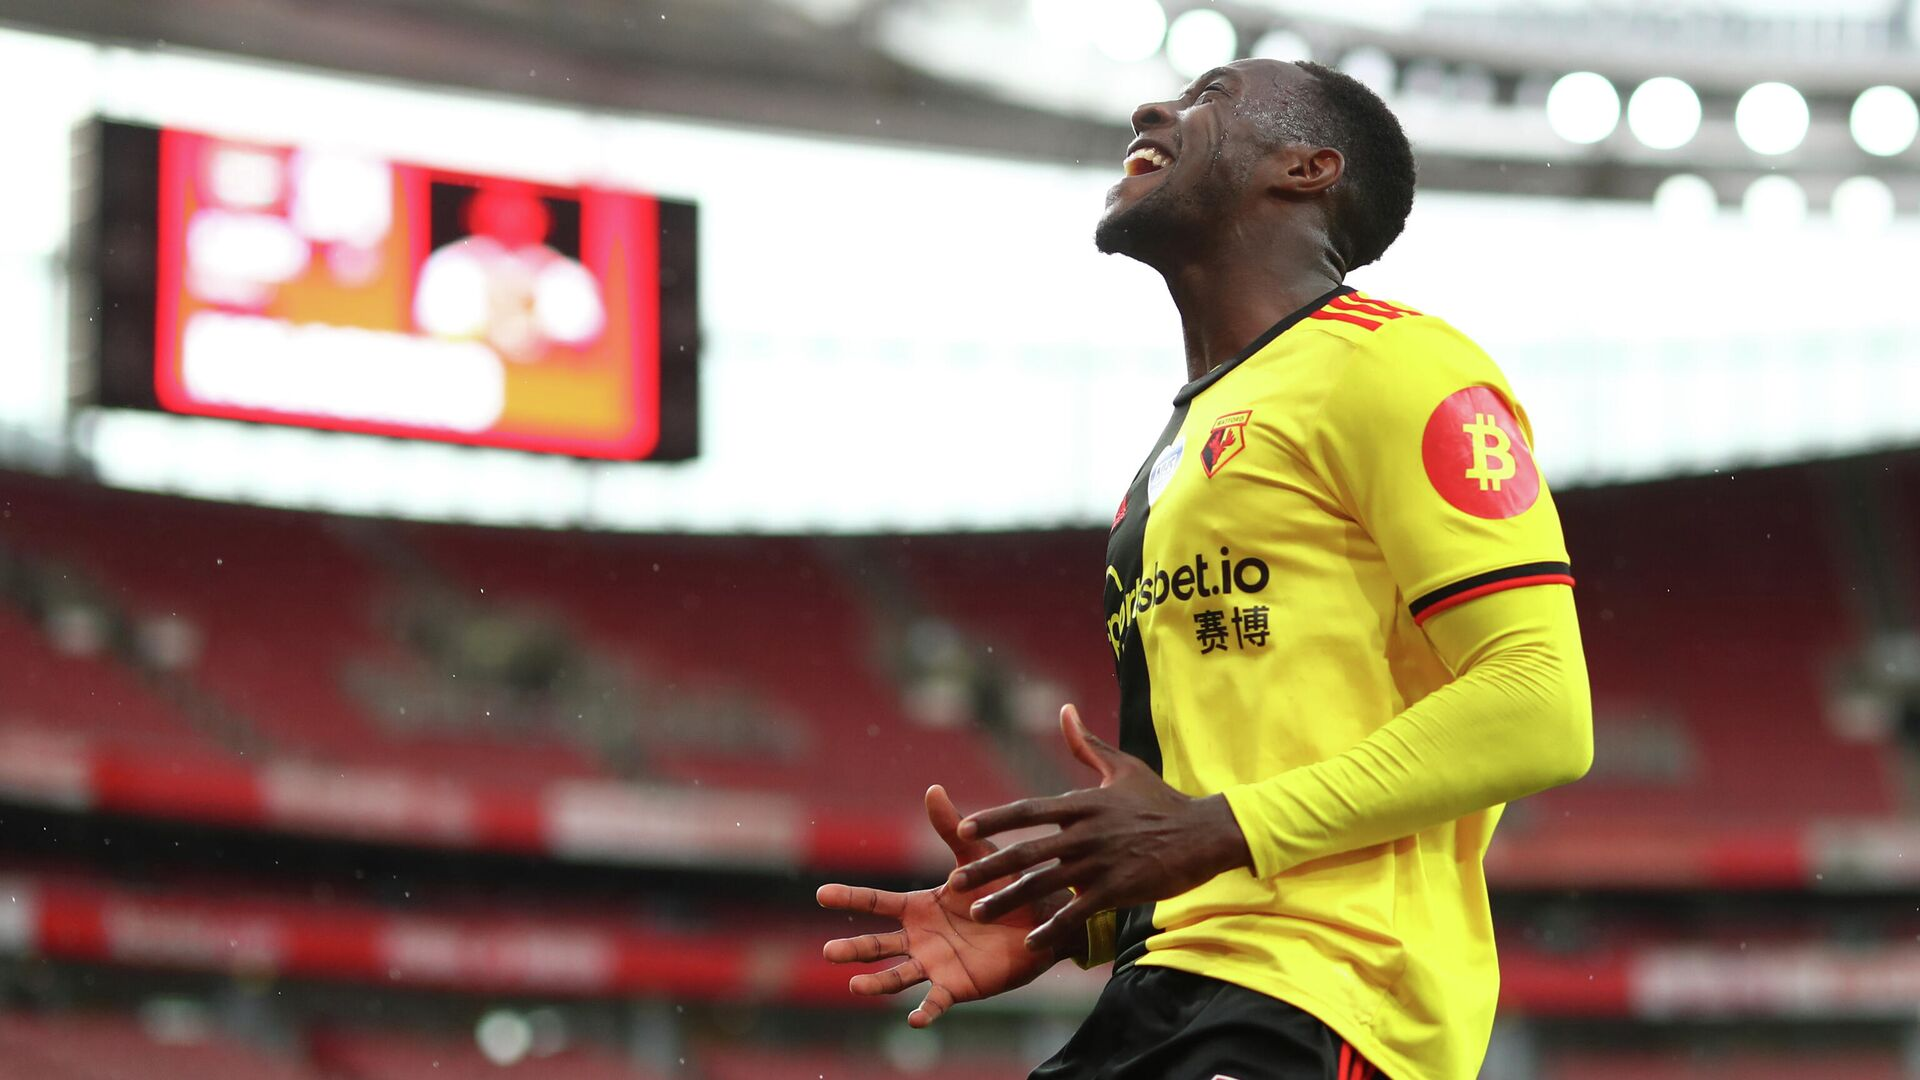 Watford's English striker Danny Welbeck reacts to a missed opportunity during the English Premier League football match between Arsenal and Watford at the Emirates Stadium in London on July 26, 2020. (Photo by Julian Finney / POOL / AFP) / RESTRICTED TO EDITORIAL USE. No use with unauthorized audio, video, data, fixture lists, club/league logos or 'live' services. Online in-match use limited to 120 images. An additional 40 images may be used in extra time. No video emulation. Social media in-match use limited to 120 images. An additional 40 images may be used in extra time. No use in betting publications, games or single club/league/player publications. /  - РИА Новости, 1920, 18.10.2020